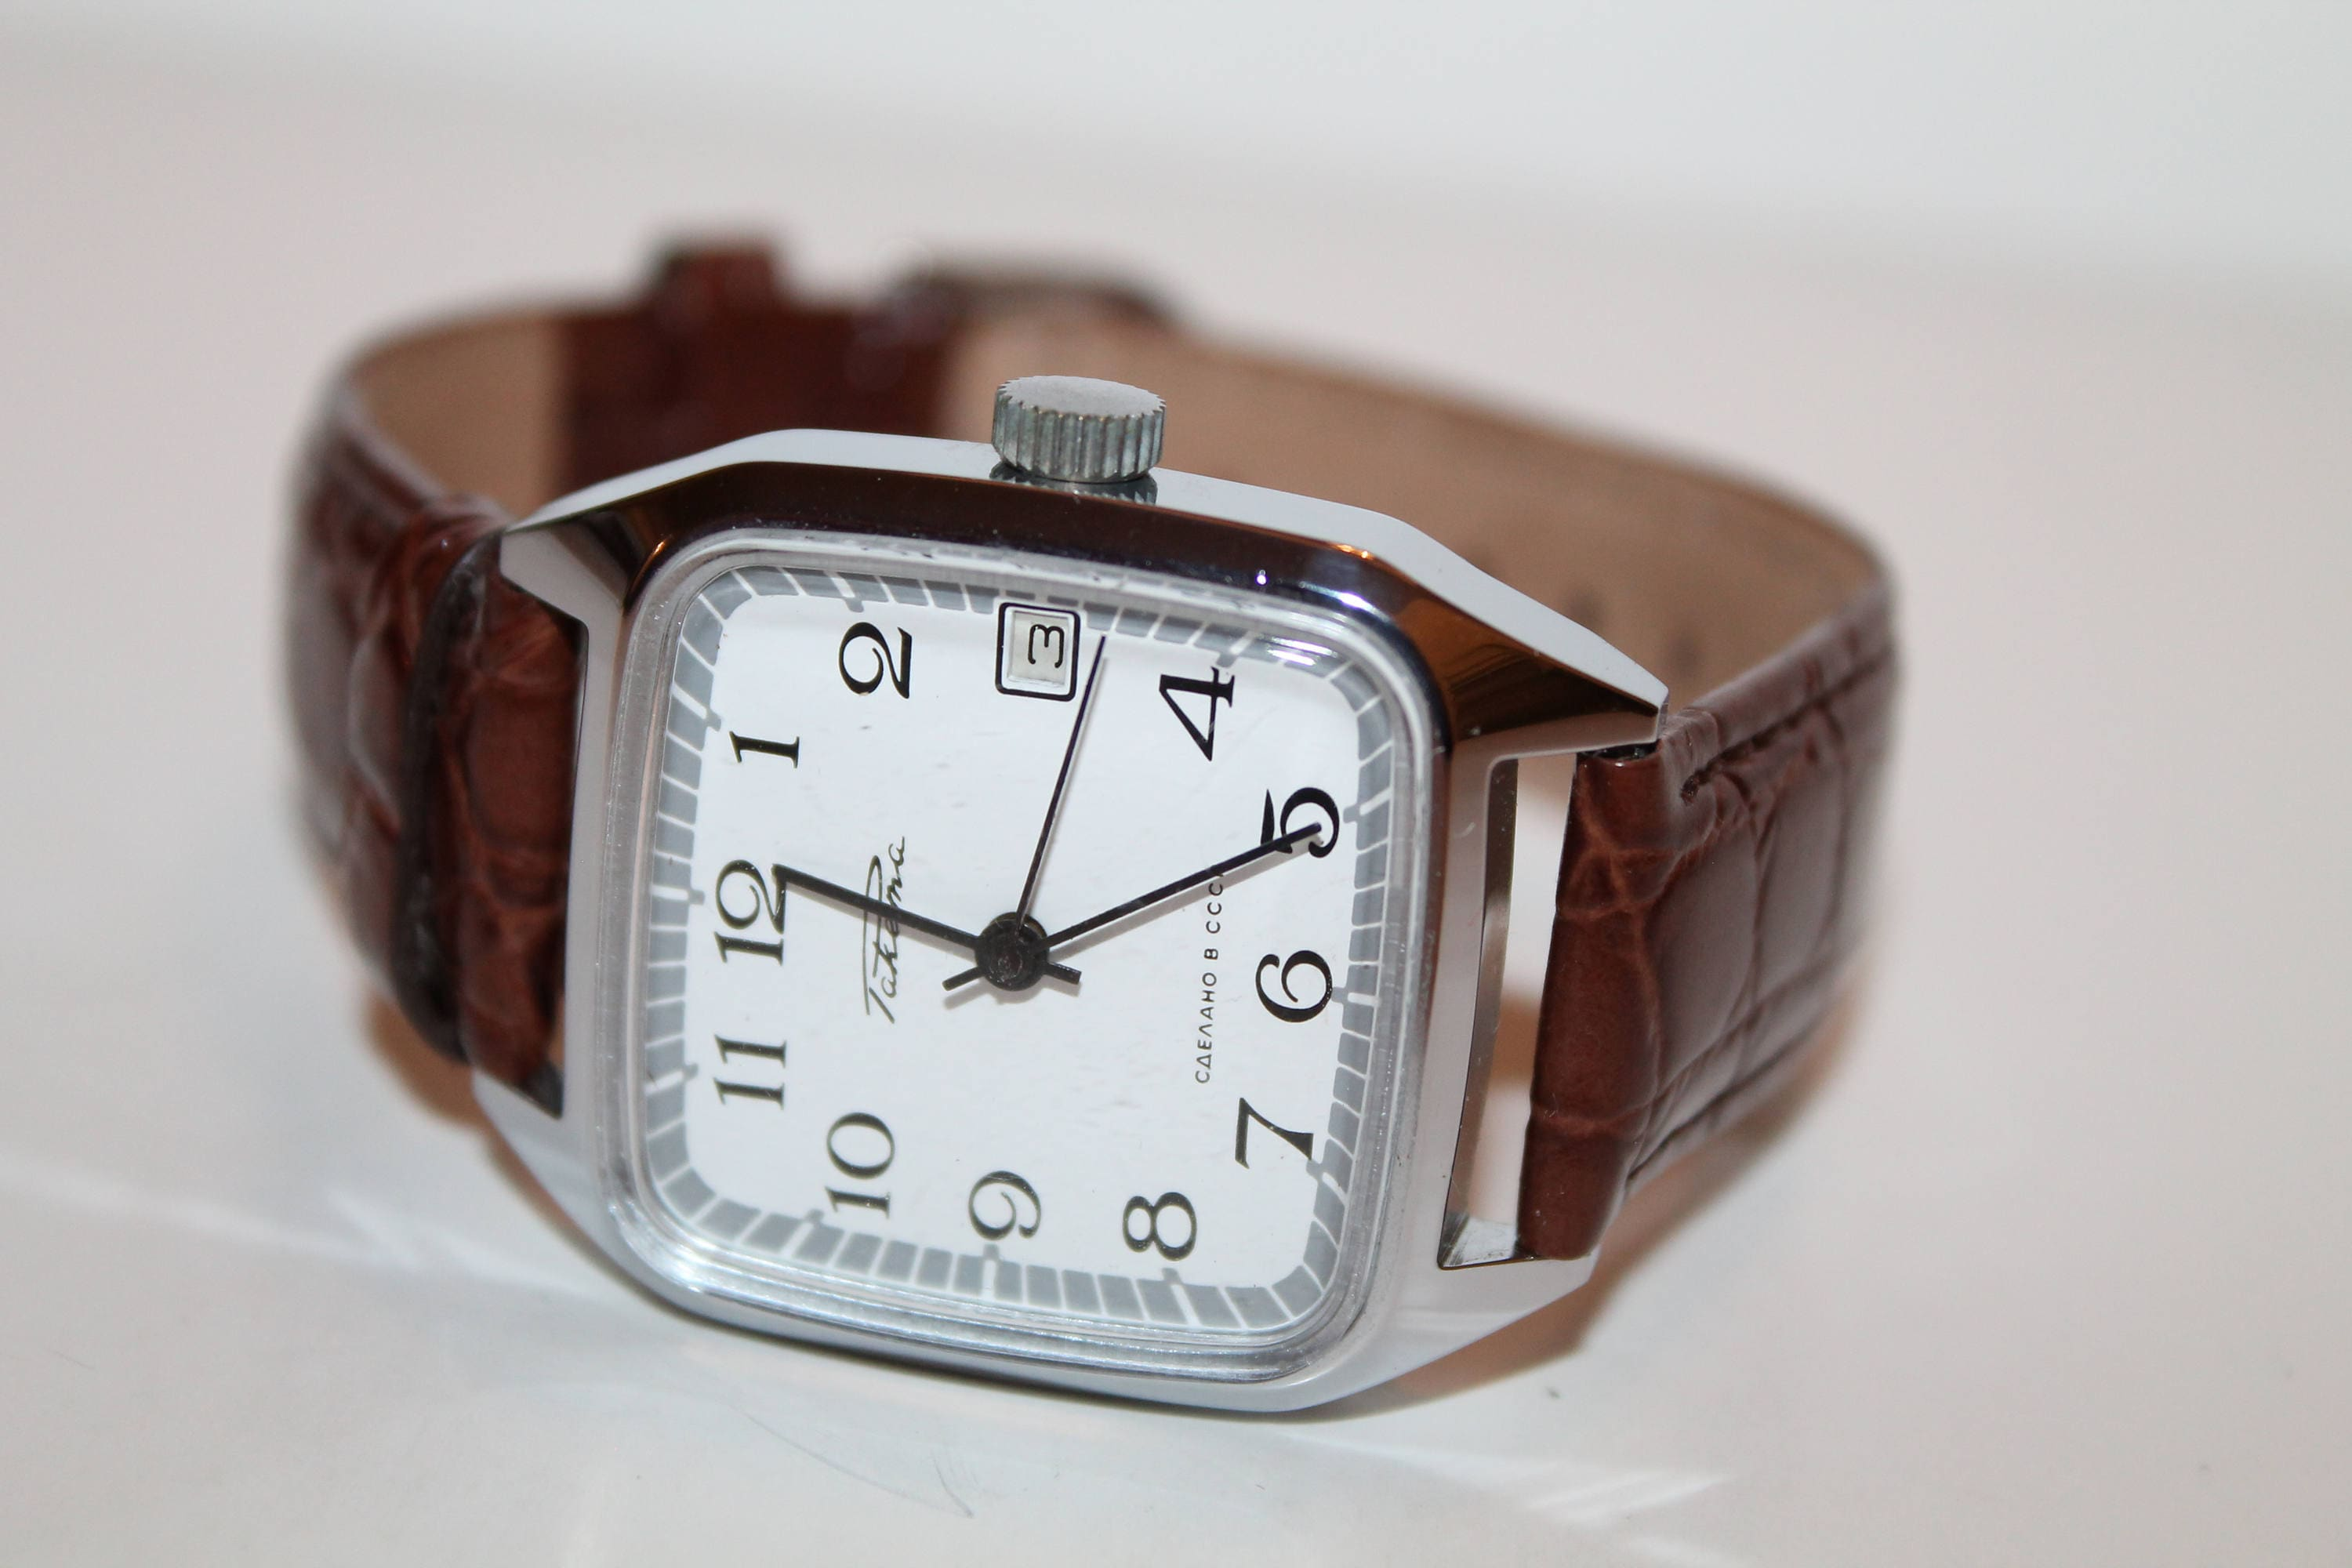 clifton img swell the chronograph blinds for watches watch how tag be blind to